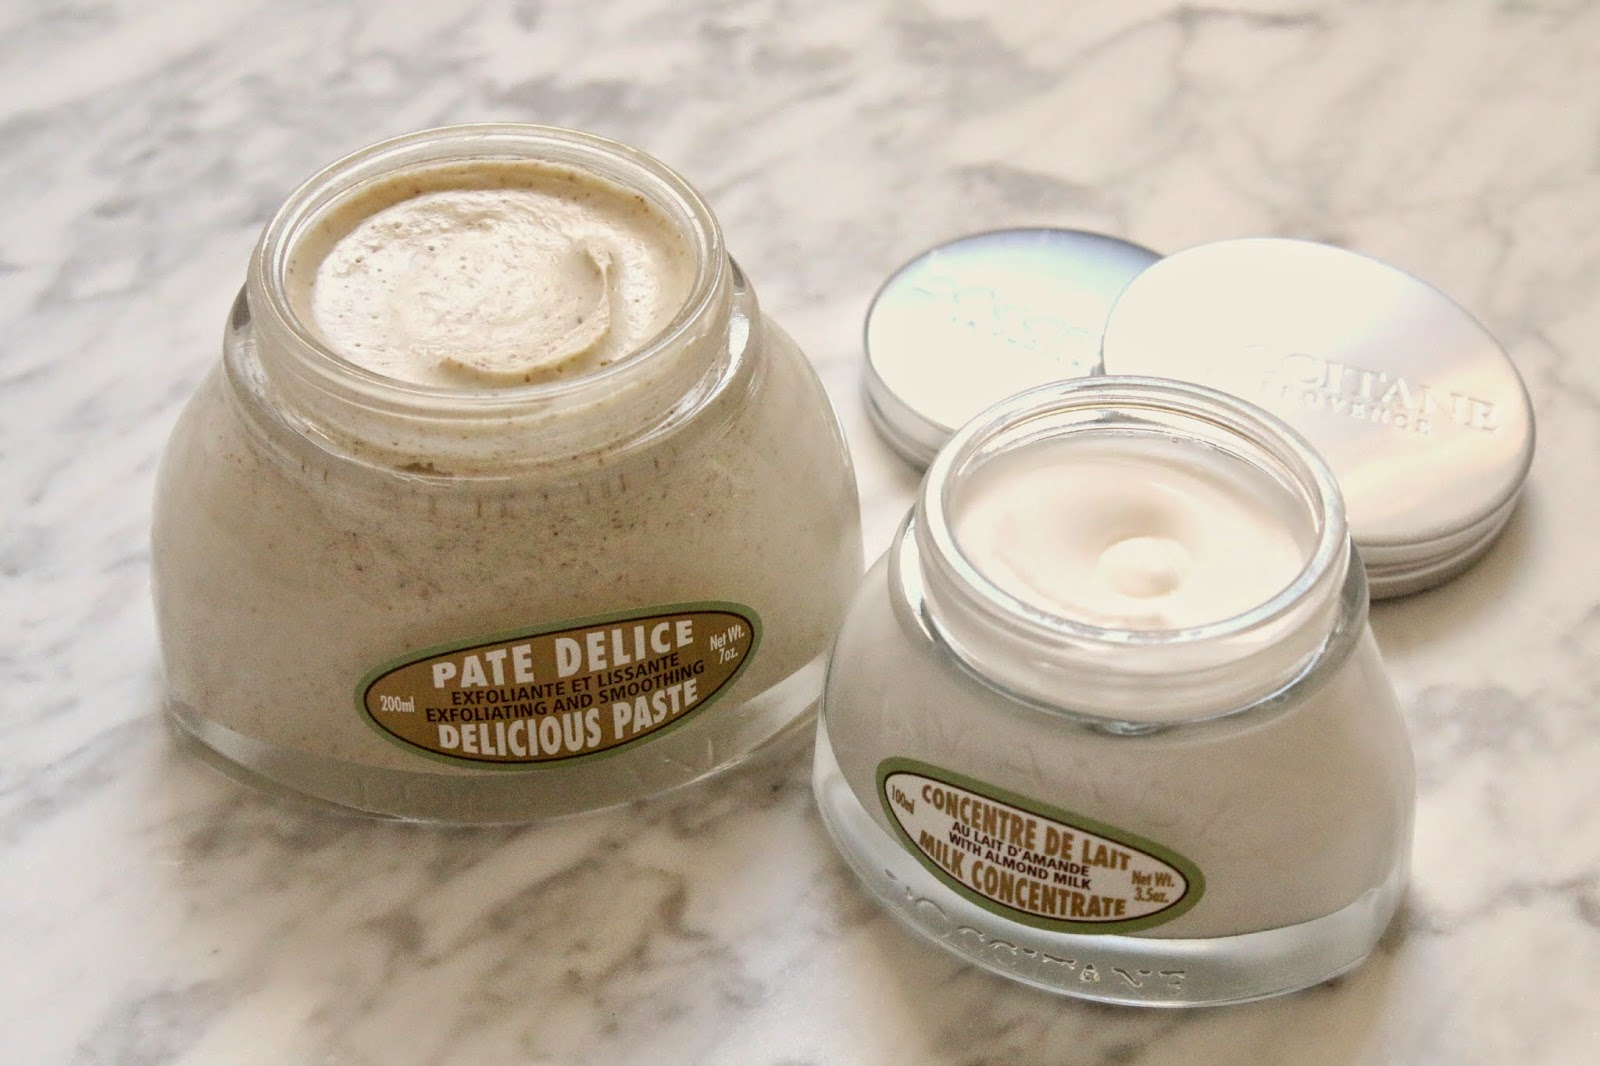 L'Occitane Almond Delicious Paste and Milk Concentrate review